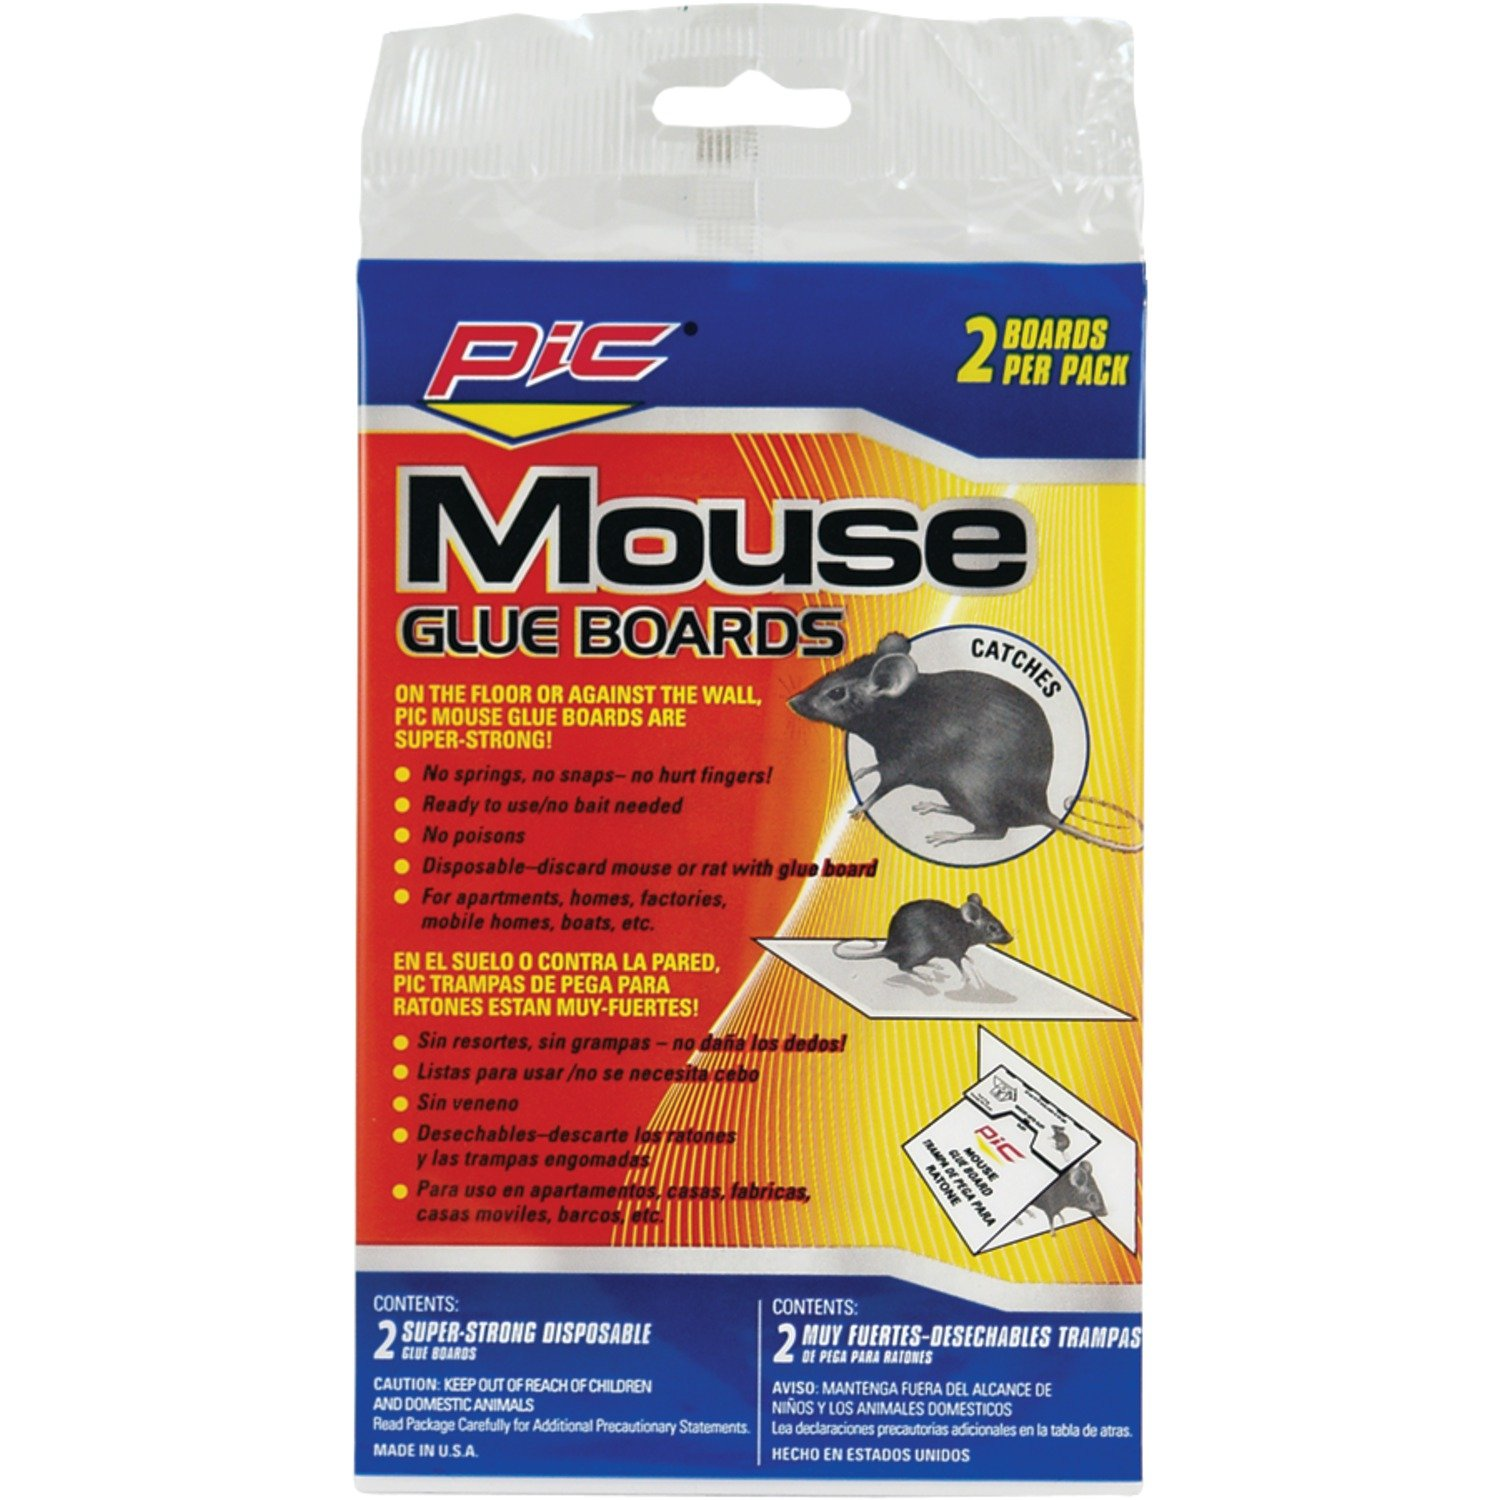 PIC GMT2F Glue Mouse Boards (24 Pack of 2) by PIC